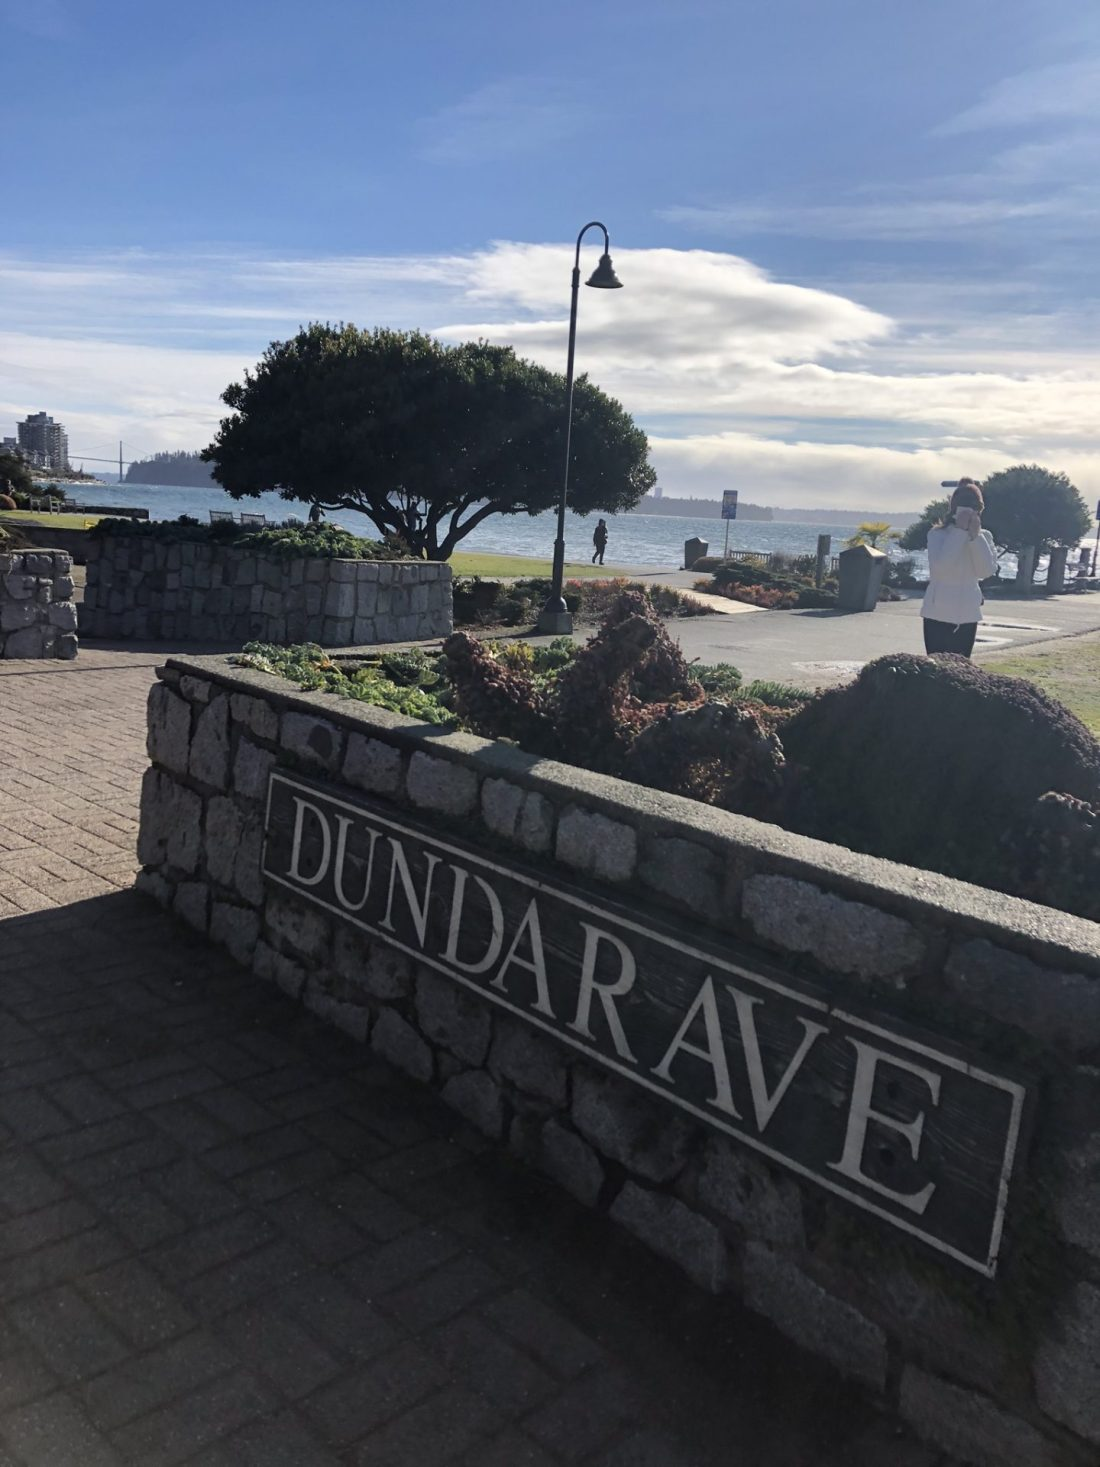 Dundarave, British Columbia